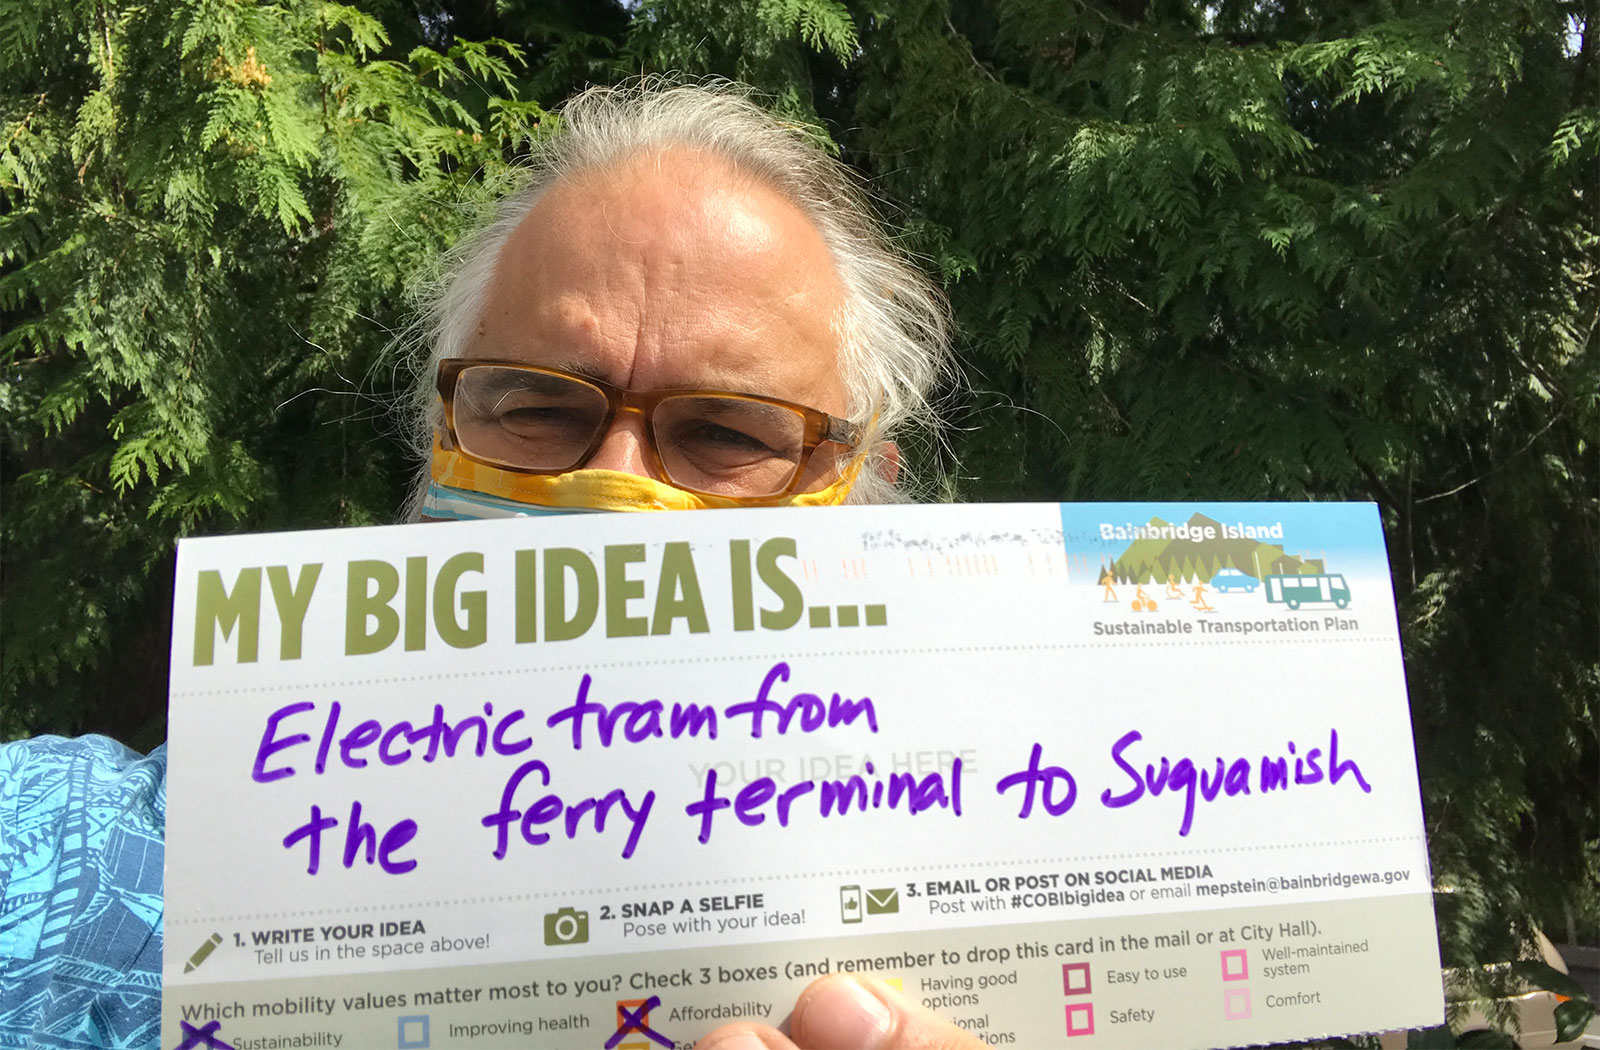 a postcard stating a community member's big idea to have an electric tram from the ferry terminal to Suquamish